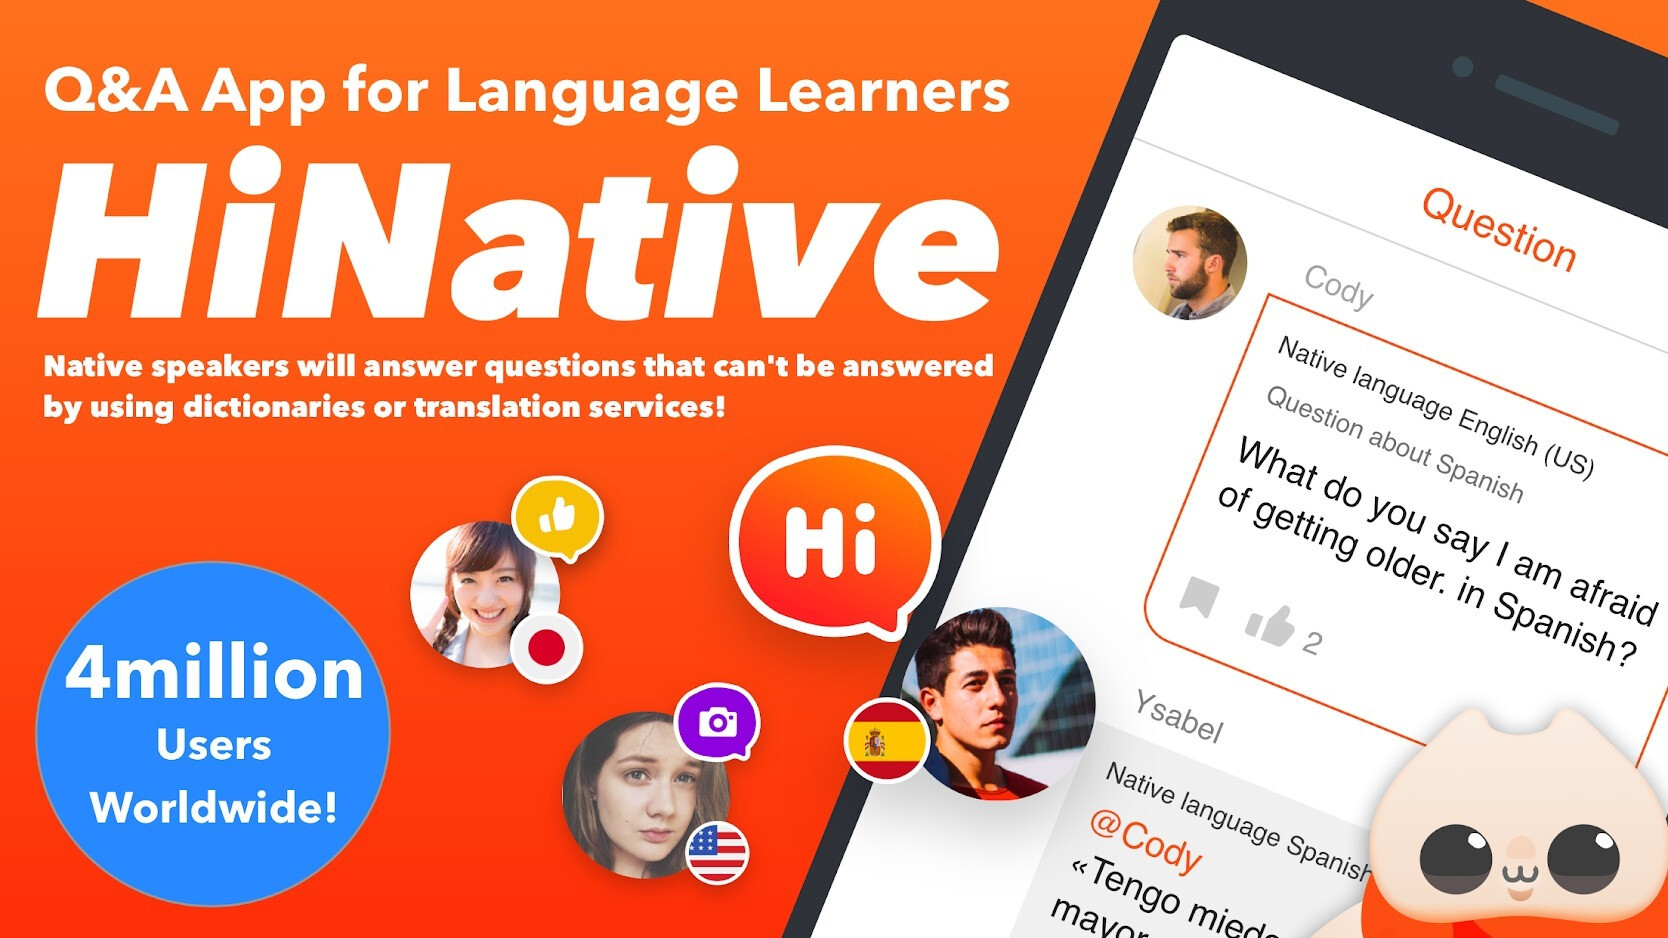 The best language learning apps and how to use them (2019 edition